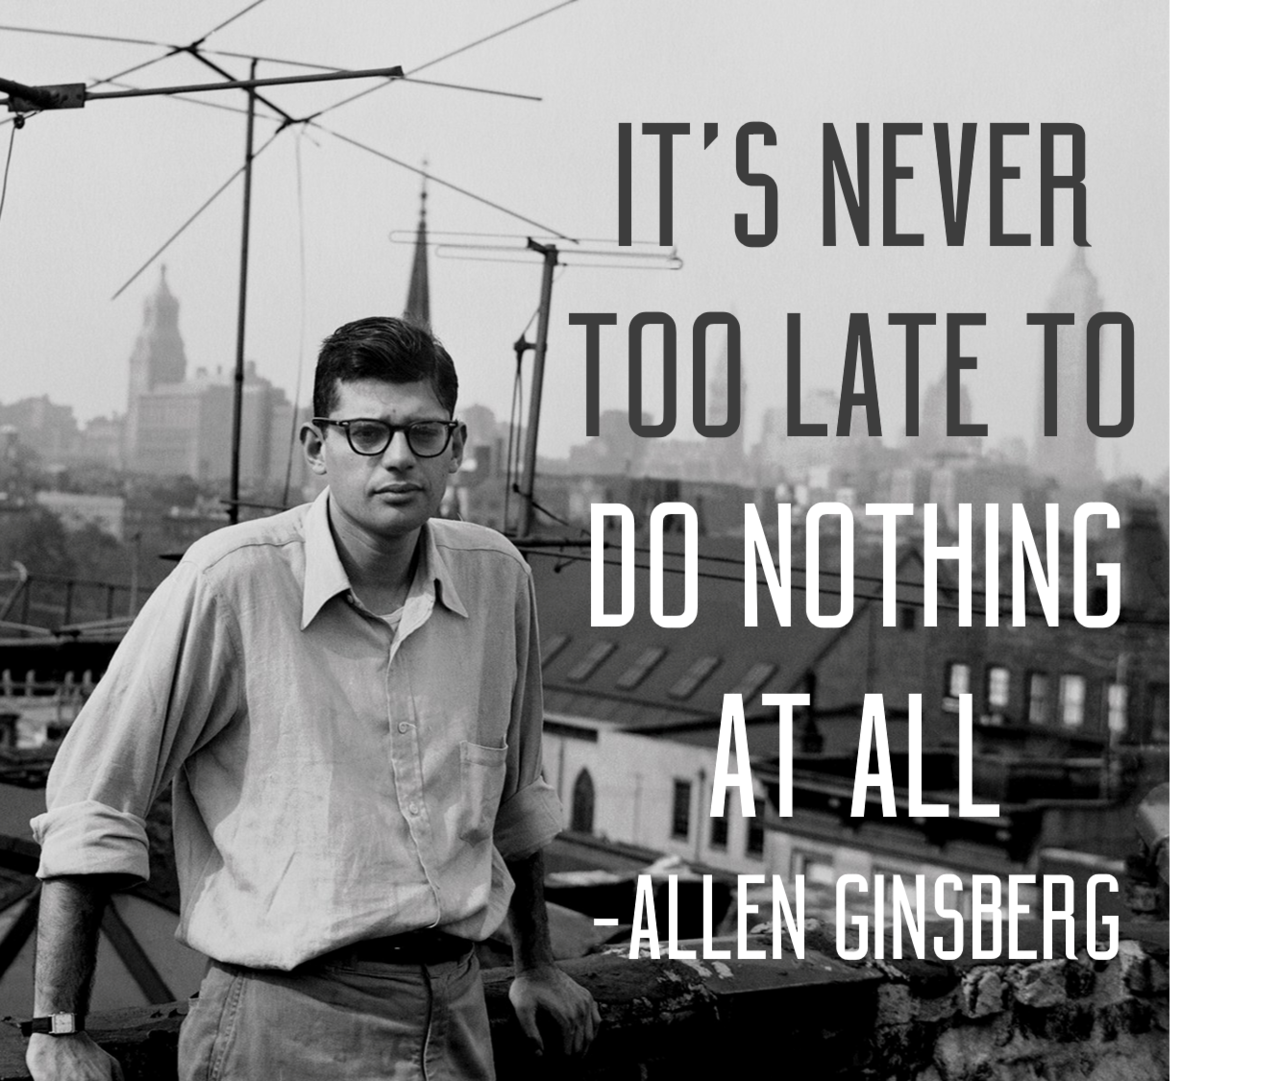 Laziness quote It's never too late to do nothing at all.